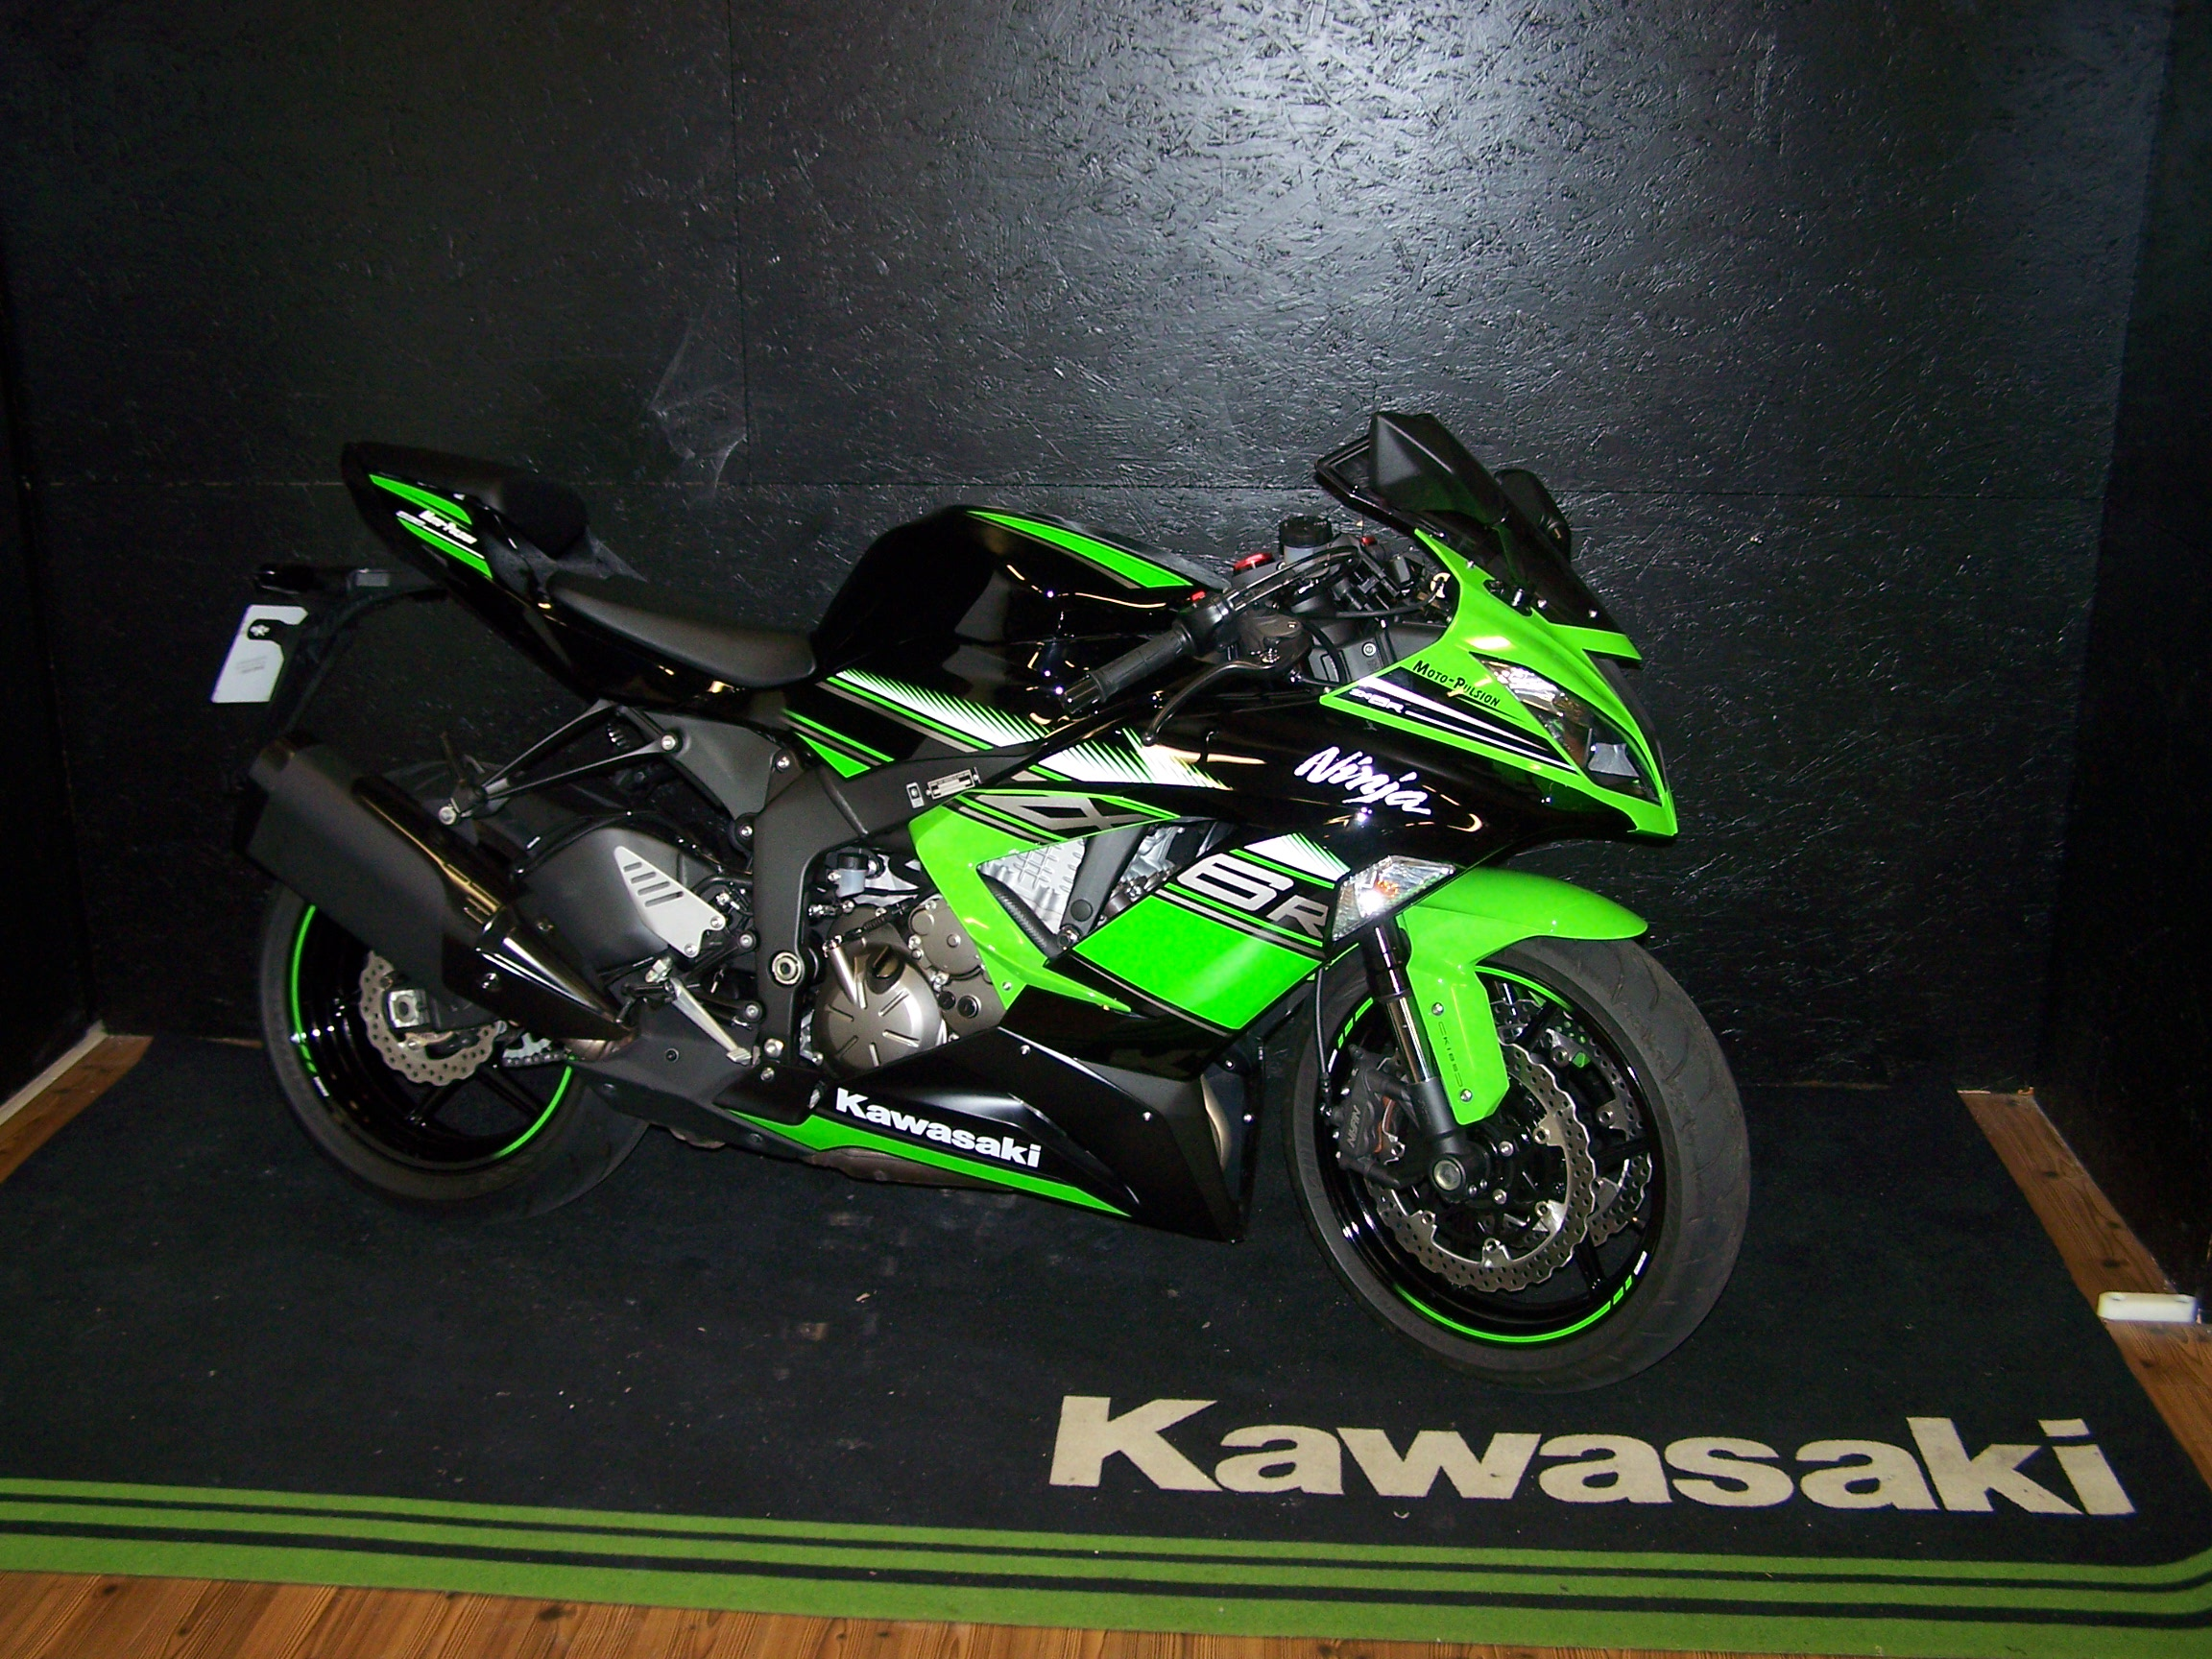 kawasaki ninja zx6 r 636 krt sportive occasion moto pulsion concessionnaire moto exclusif. Black Bedroom Furniture Sets. Home Design Ideas